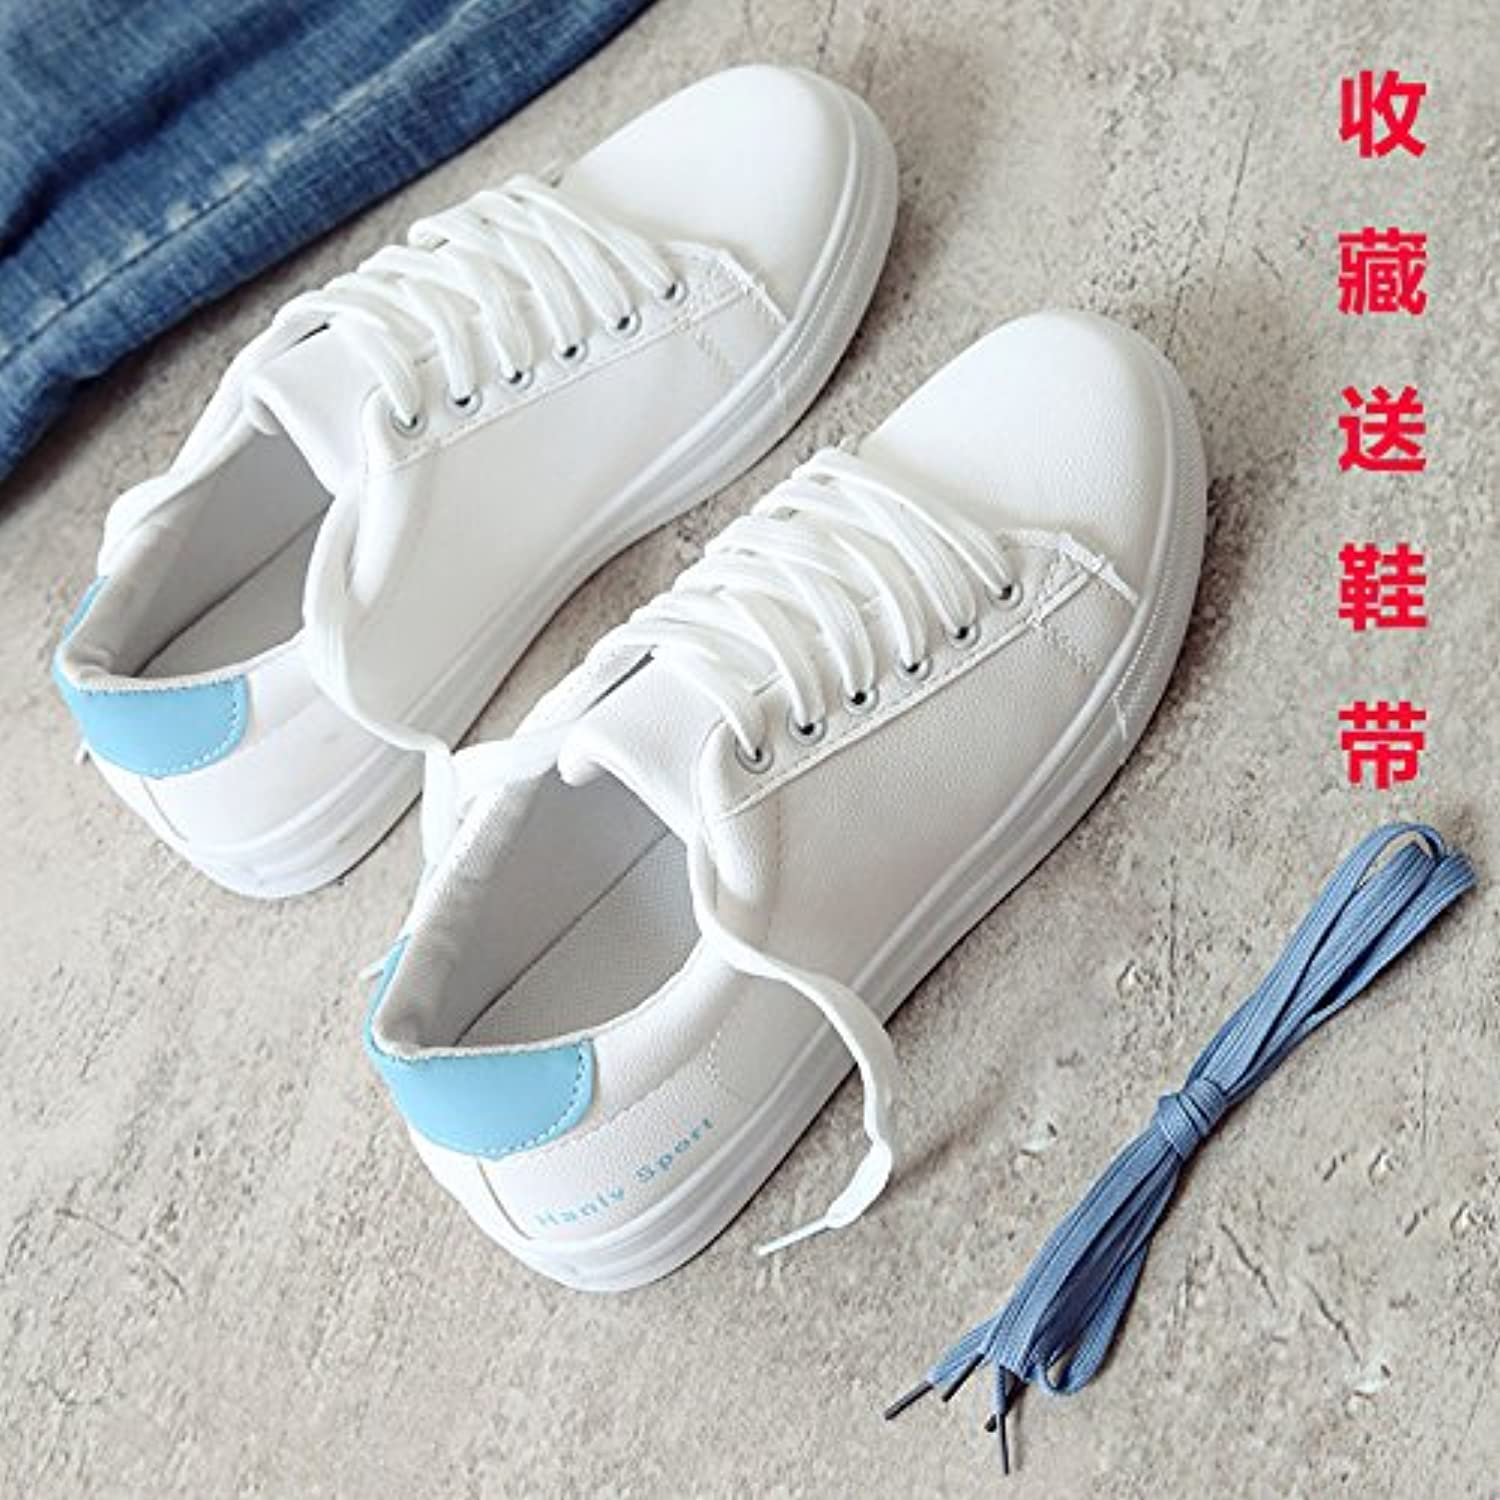 Xuancaiduo White shoes Female Flat shoes Casual shoes Running shoes Women's shoes Walking shoes Casual shoes Canvas shoes, bluee, 35